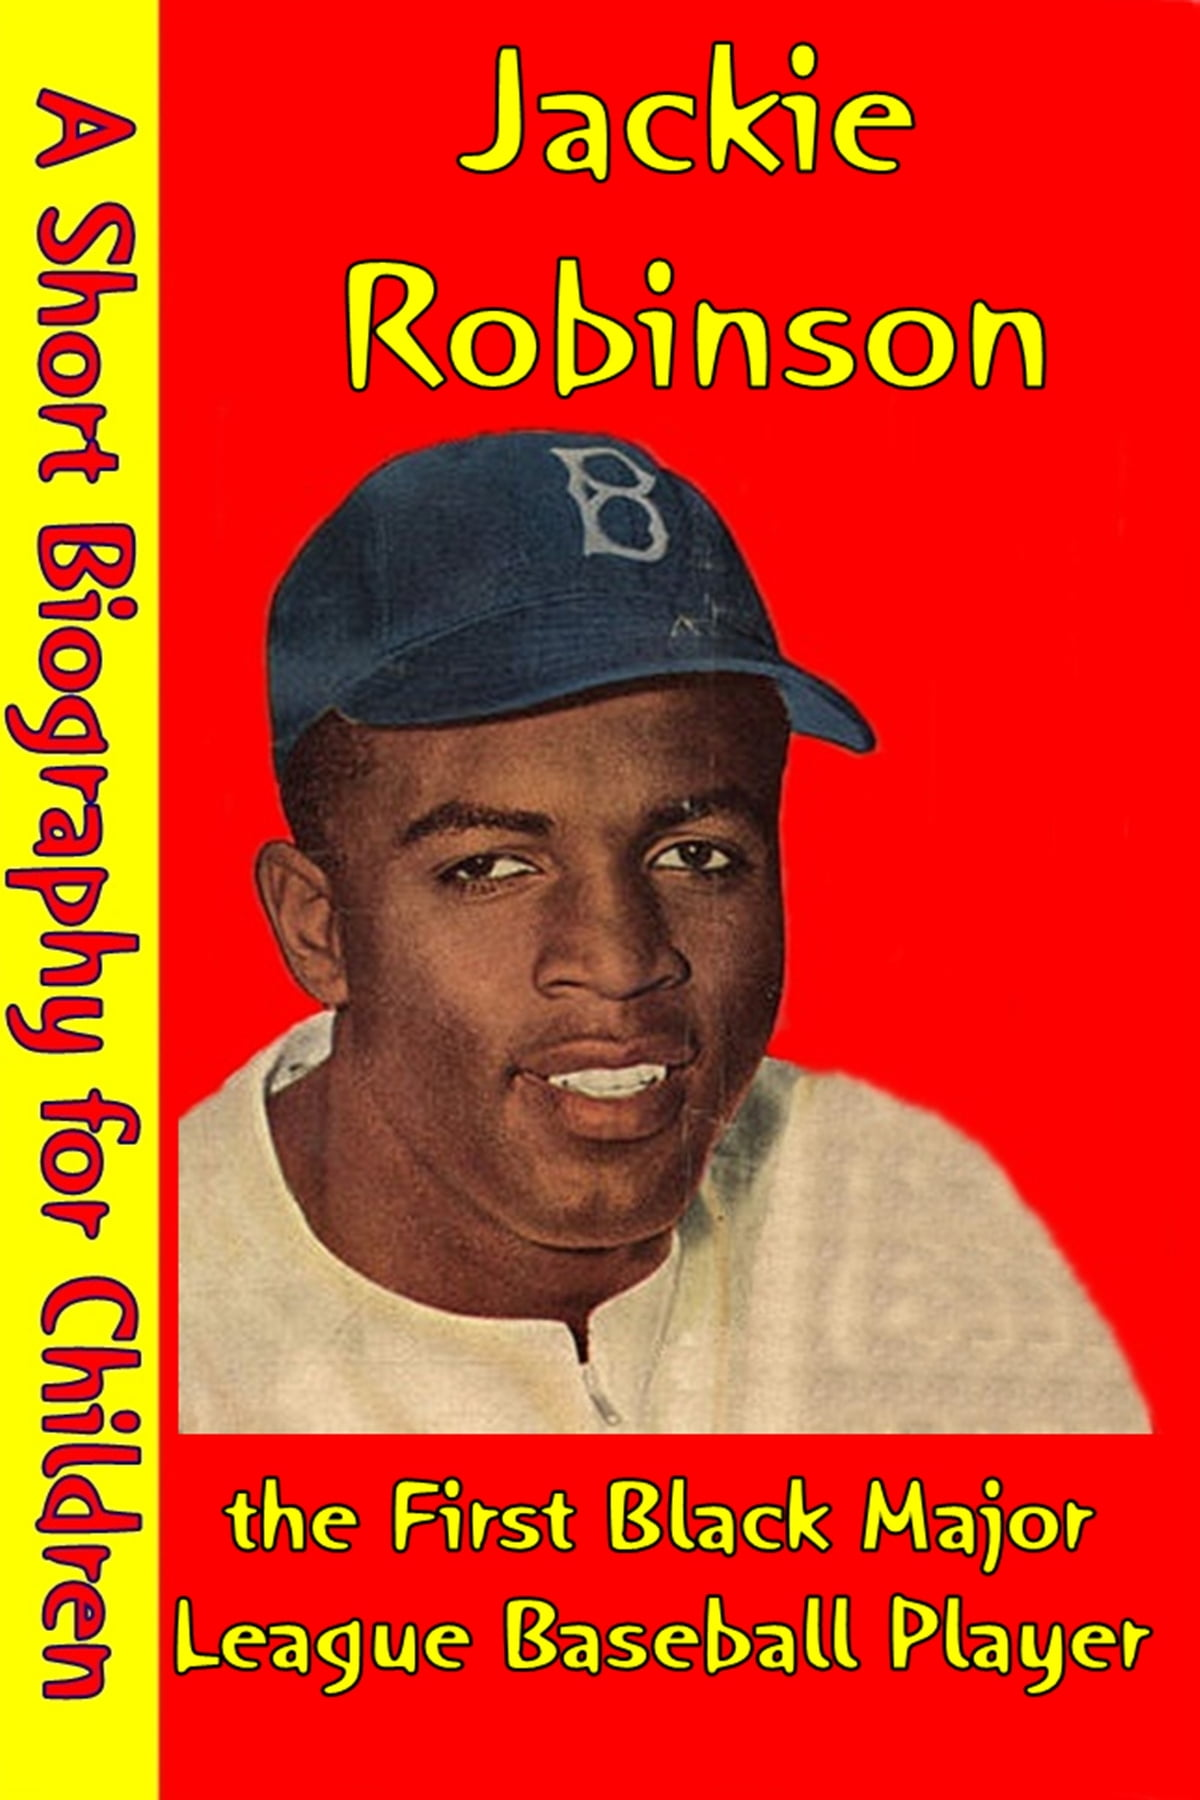 Jackie Robinson The First Black Major League Baseball